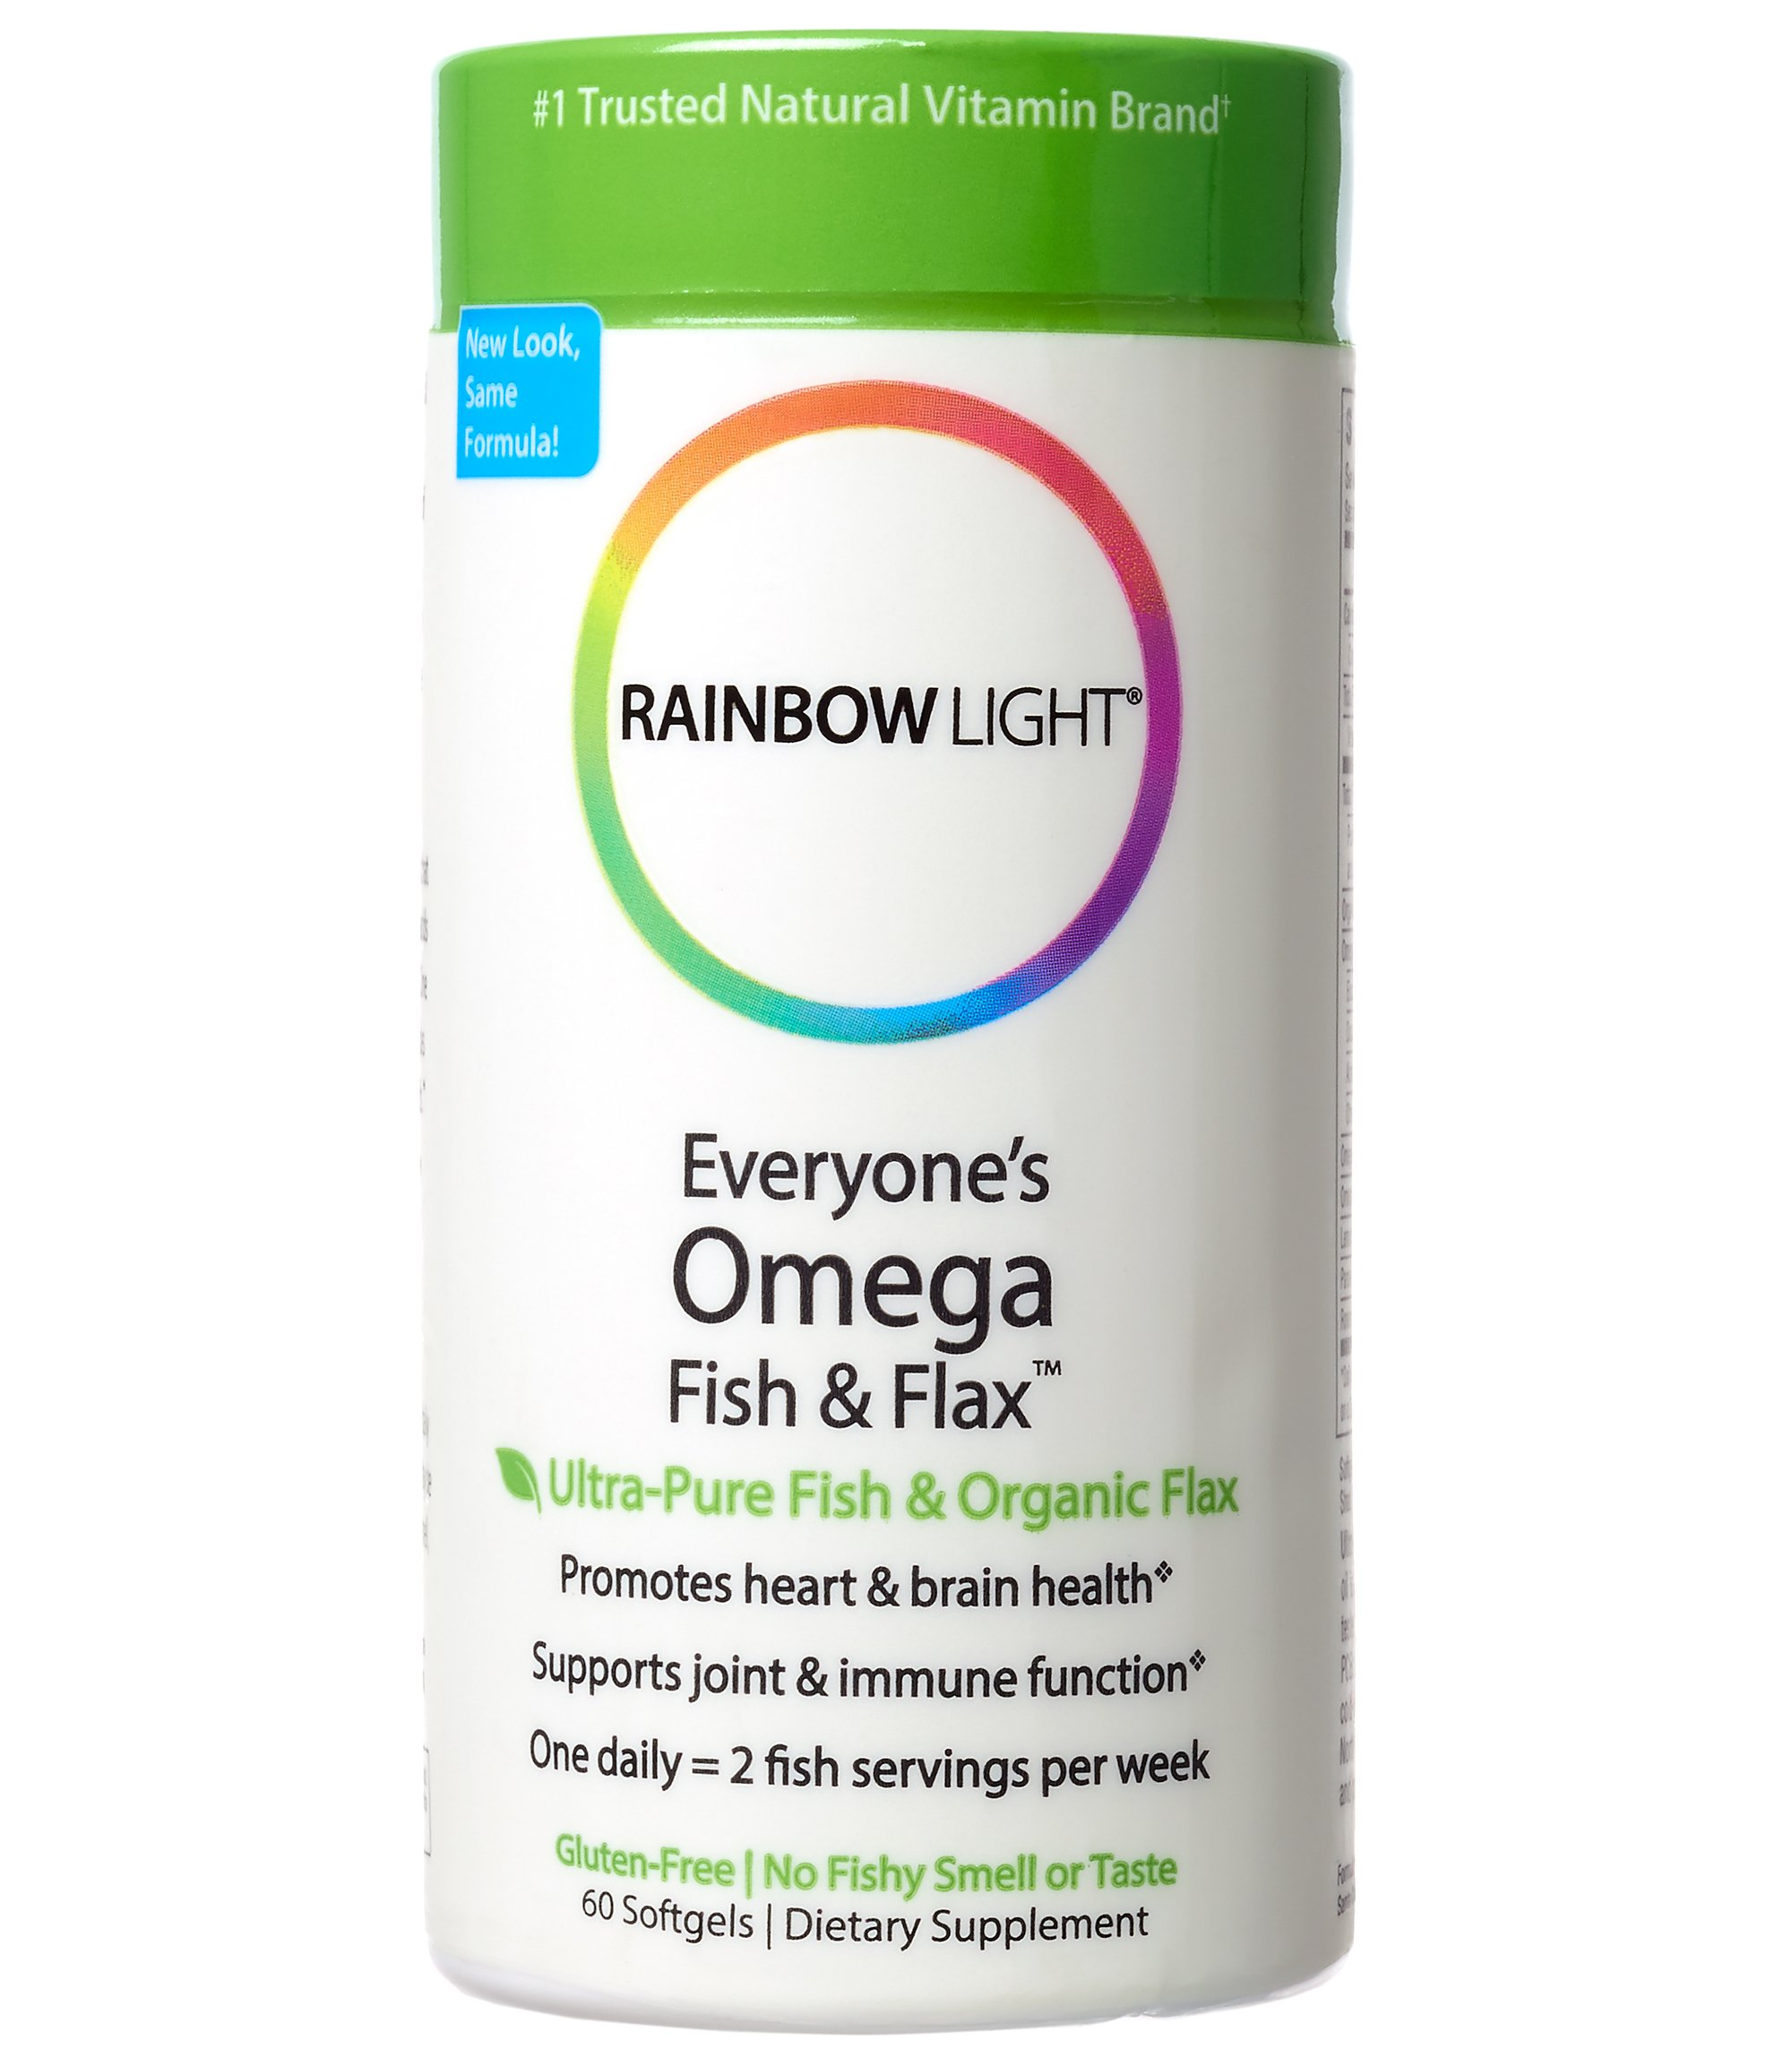 Rainbow Light - Everyone's Omega Fish & Flax, Supports a Healthy Brain and Heart while Promoting Joint Comfort with Omega-3 EPA and DHA, Organic Flax Oil and Vitamin D3, Lemon Flavored, 60 Softgels